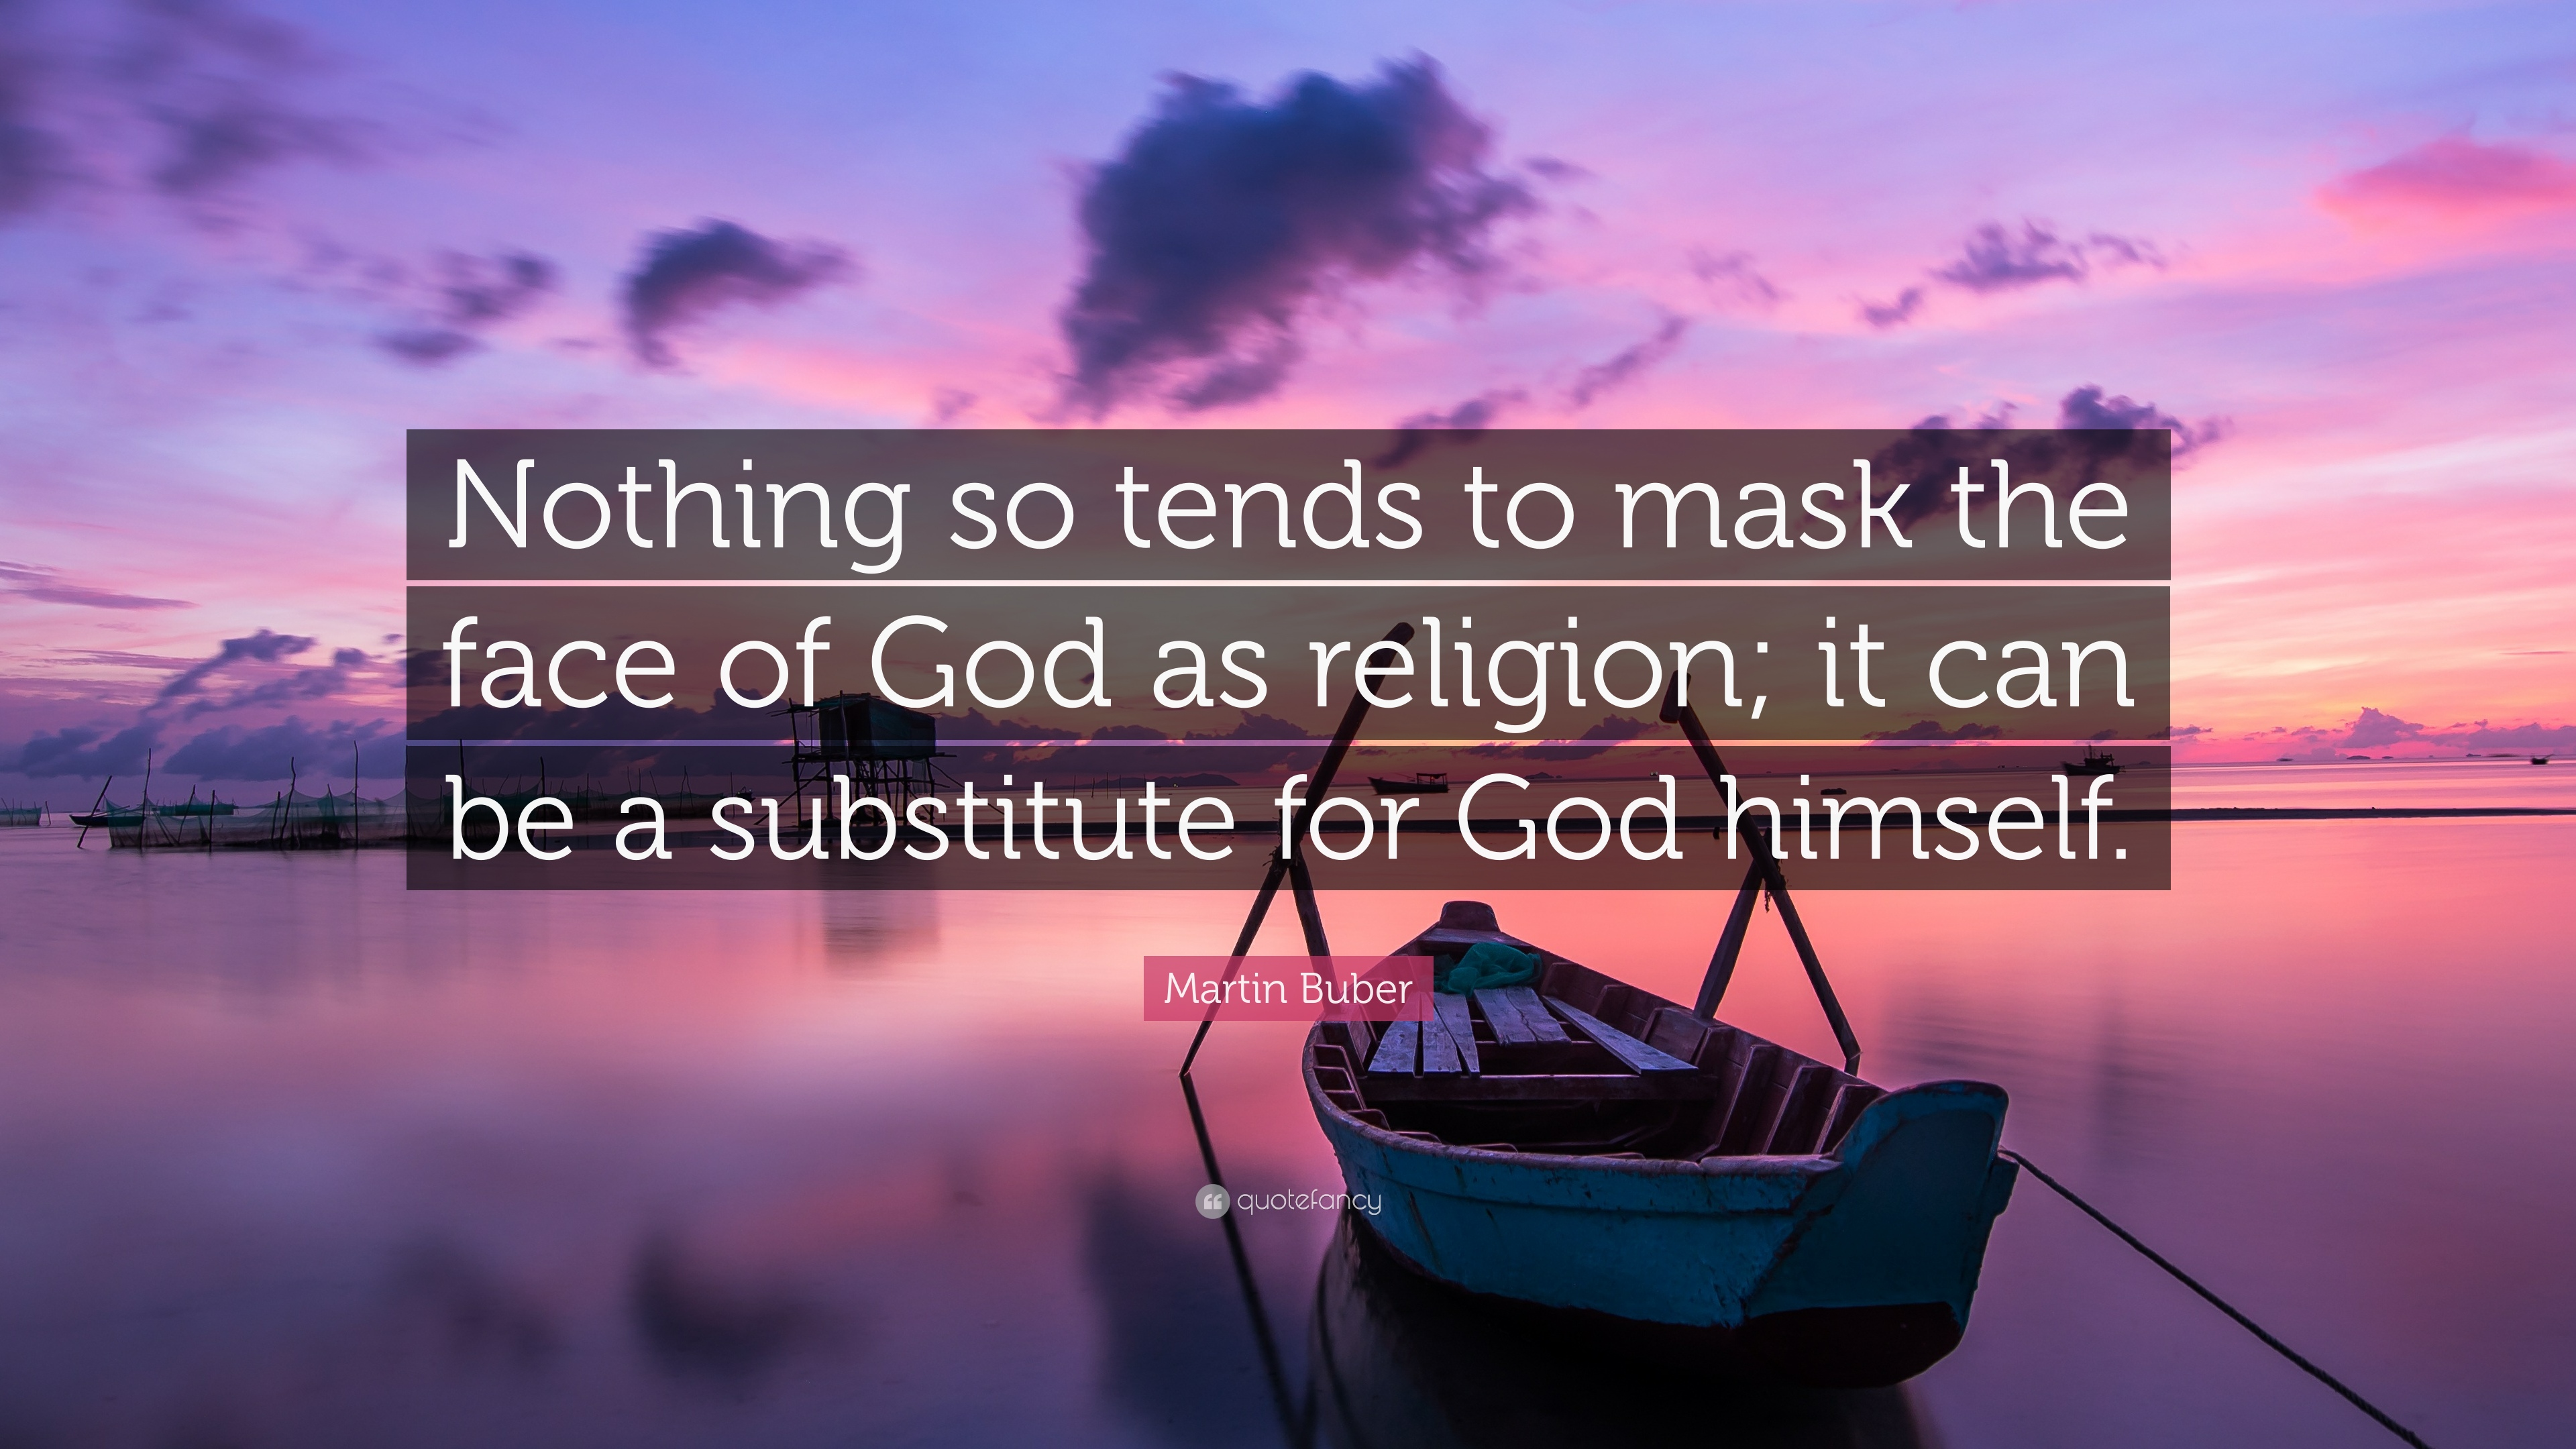 Merveilleux Martin Buber Quote: U201cNothing So Tends To Mask The Face Of God As Religion